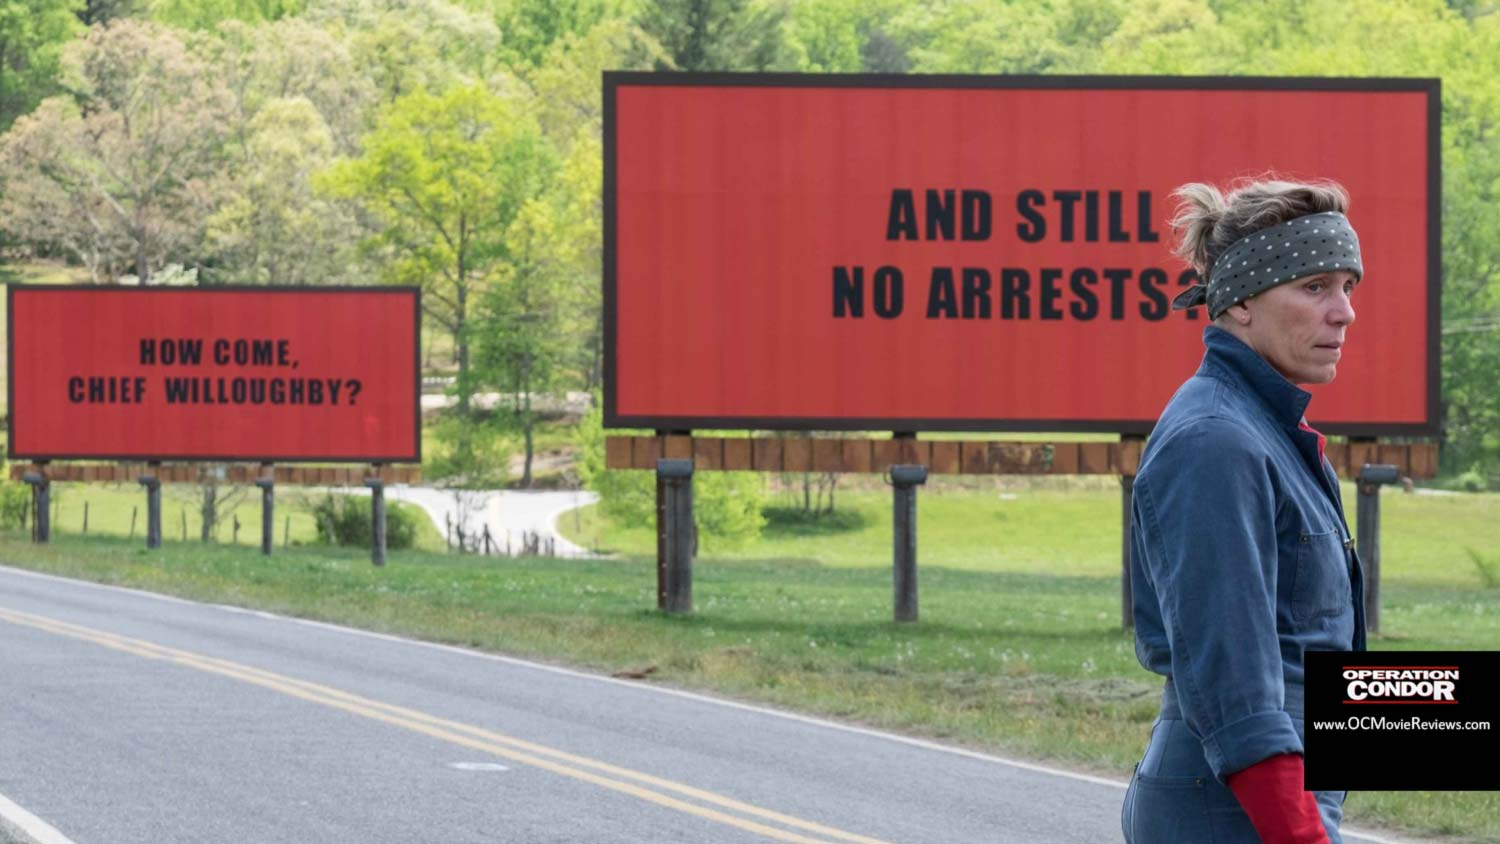 Three Billboards Outside Ebbing, Missouri Wins Big At BAFTA Awards 2018 - OC Movie Reviews - Movie Reviews, Movie News, Documentary Reviews, Short Films, Short Film Reviews, Trailers, Movie Trailers, Interviews, film reviews, film news, hollywood, indie films, documentaries